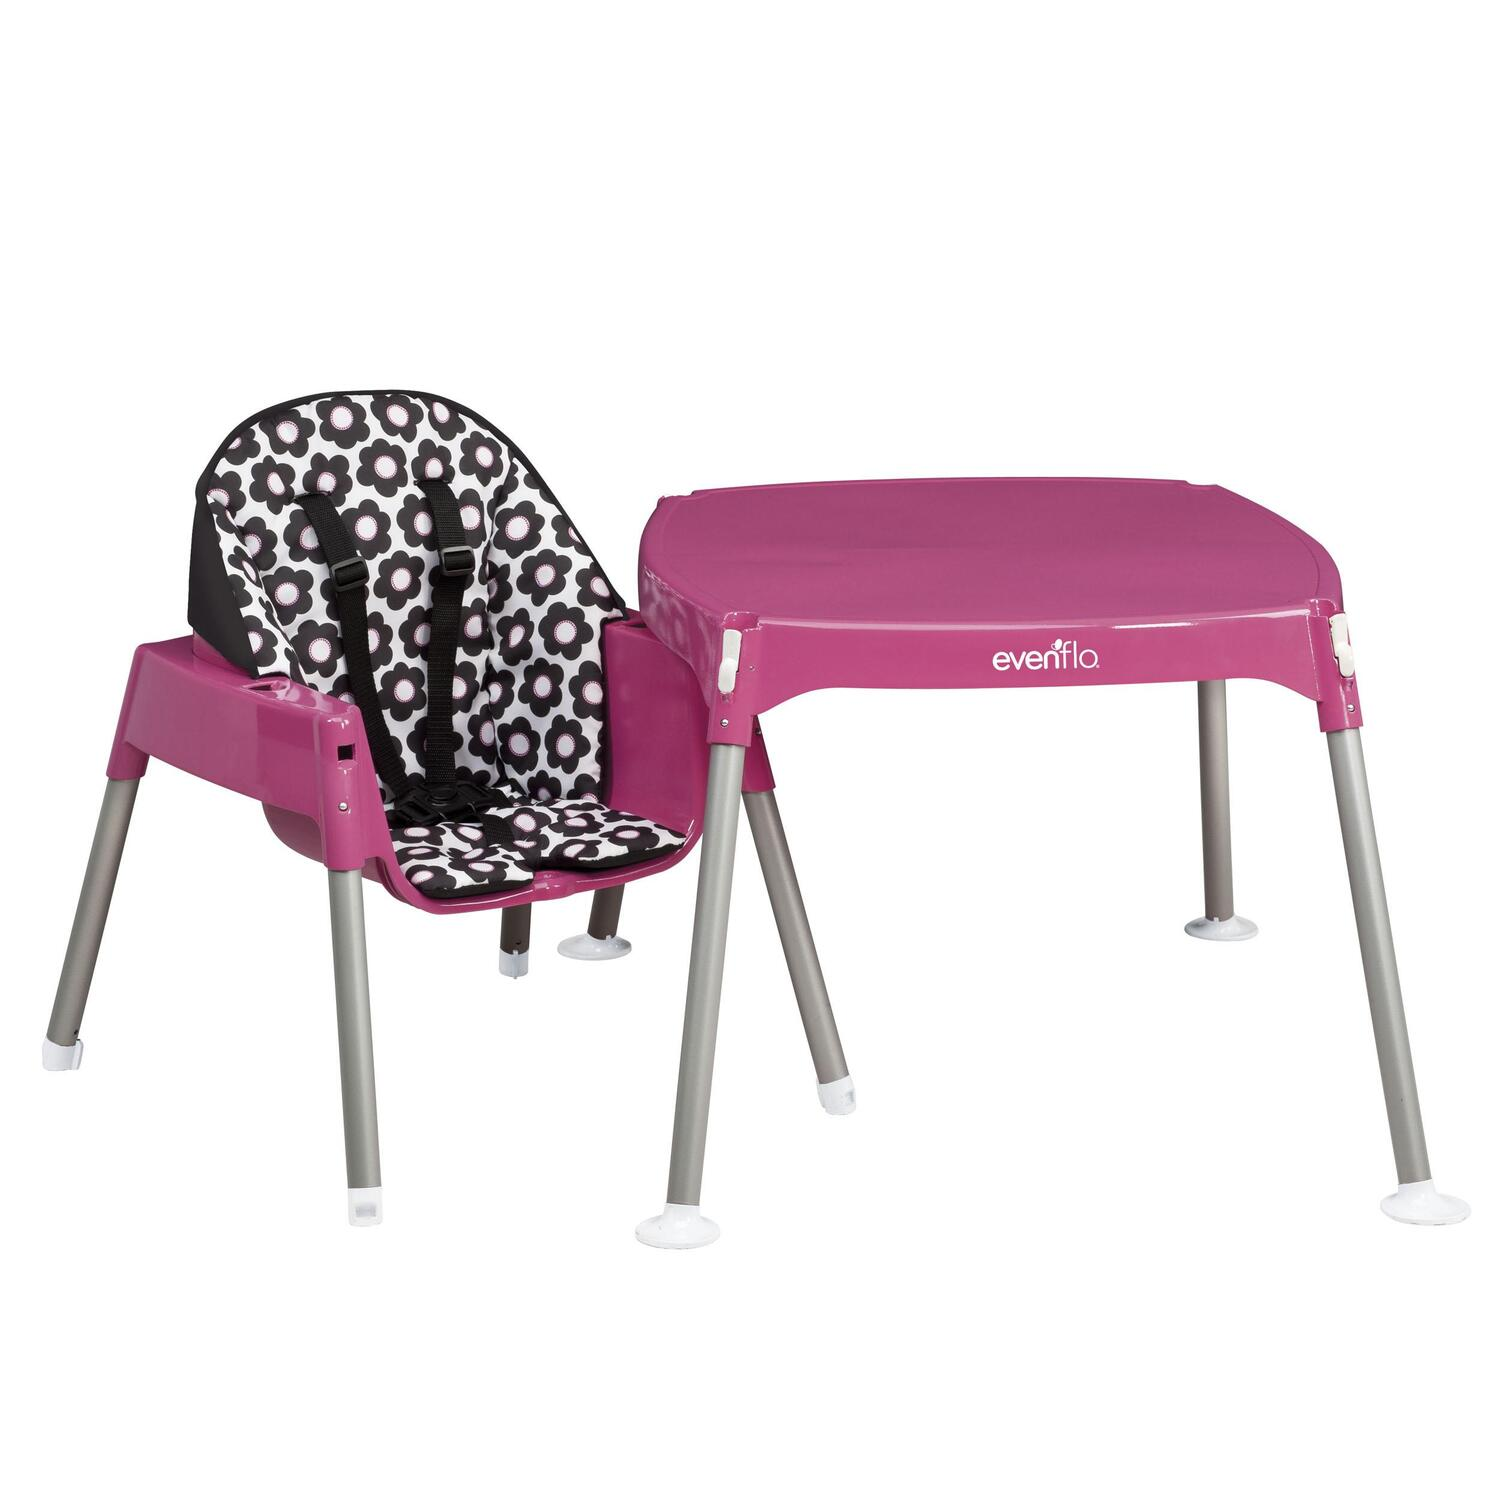 high chair converts to table and hanging debenhams evenflo convertible 3 in 1 by oj commerce 53 99